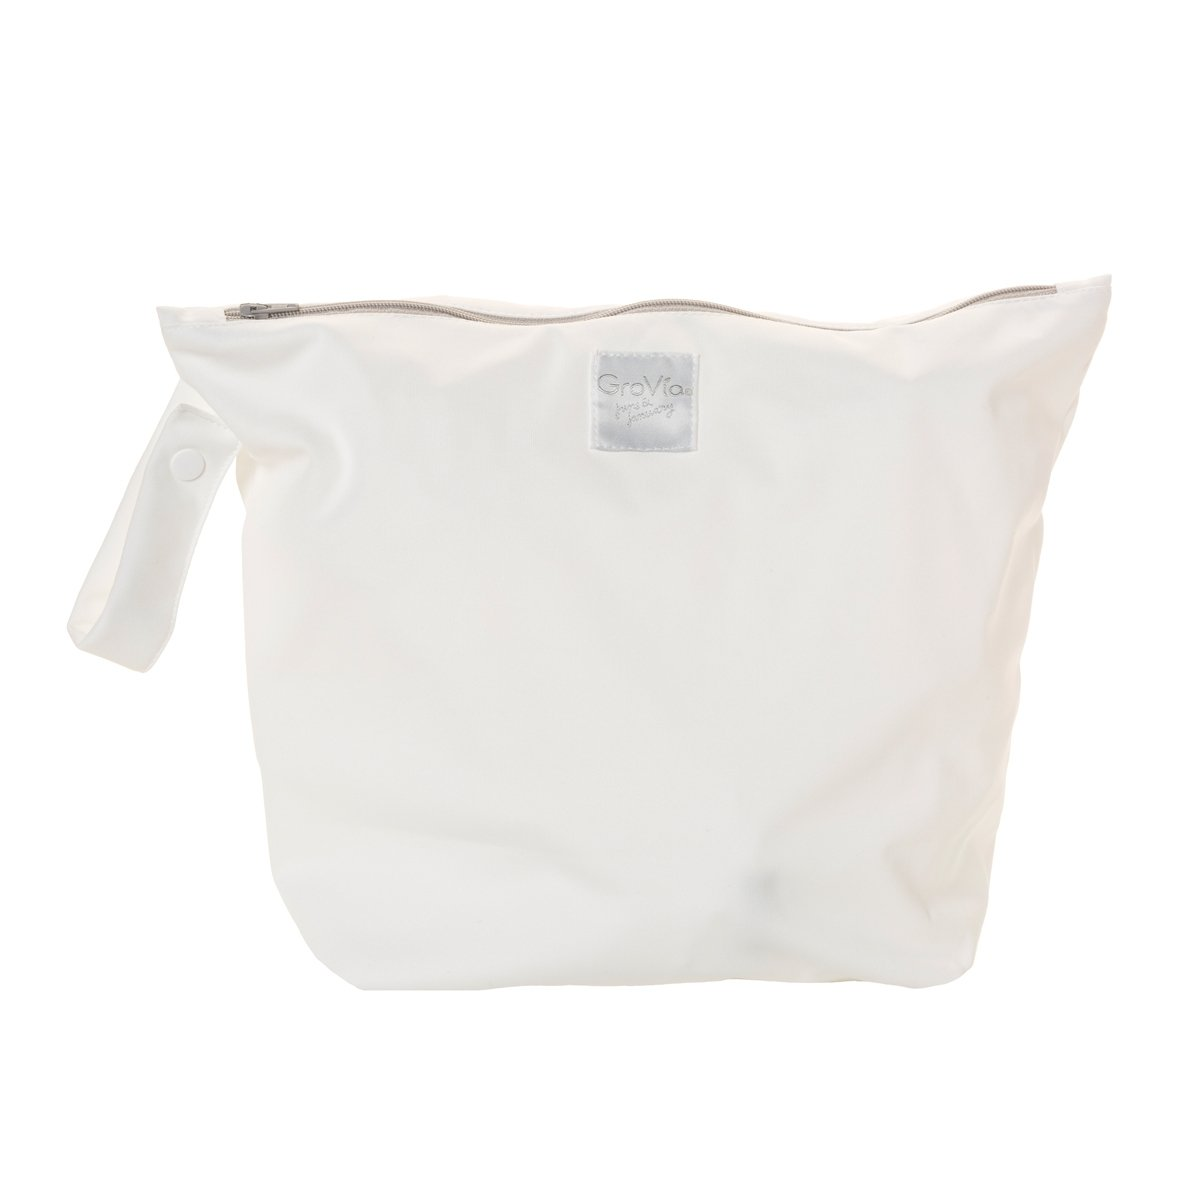 GroVia zipped wet bag - snow white